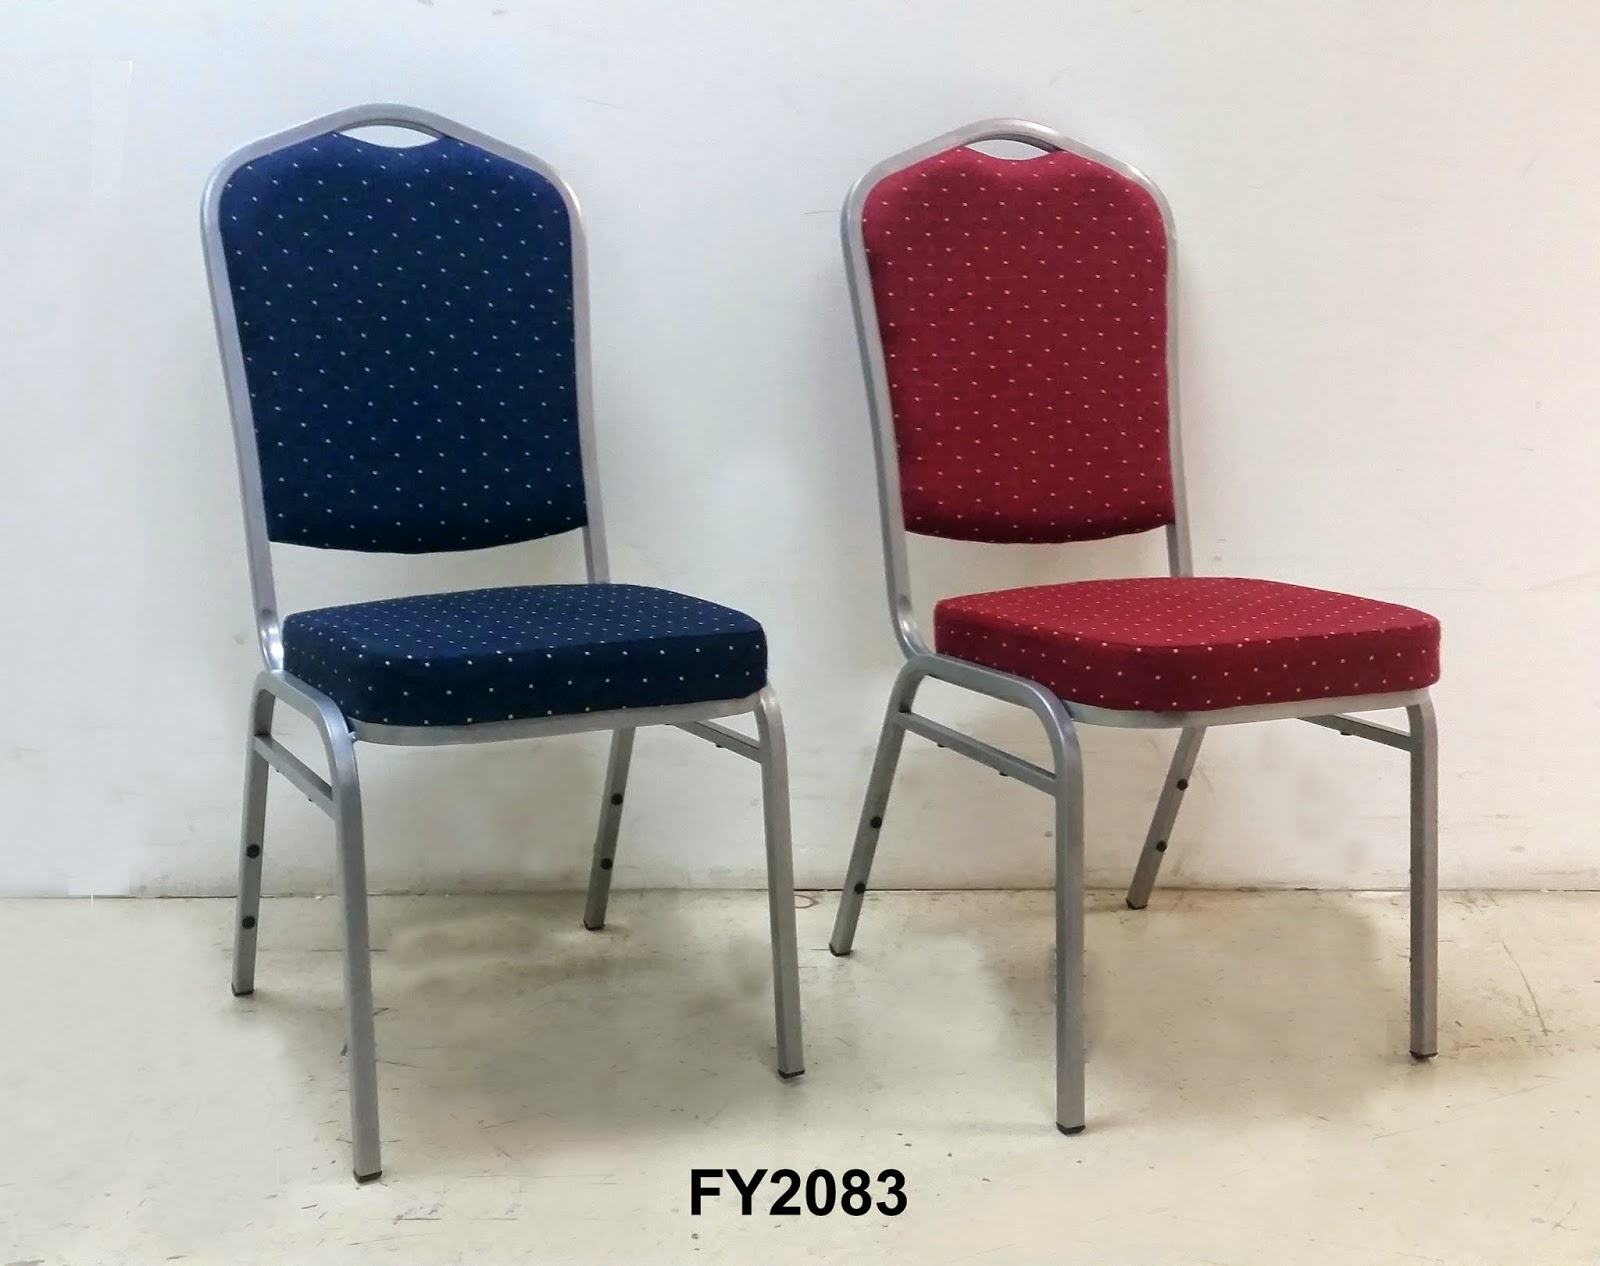 KAIMAY TRADING PTE LTD Projects & Wholesaler Banquet Chairs